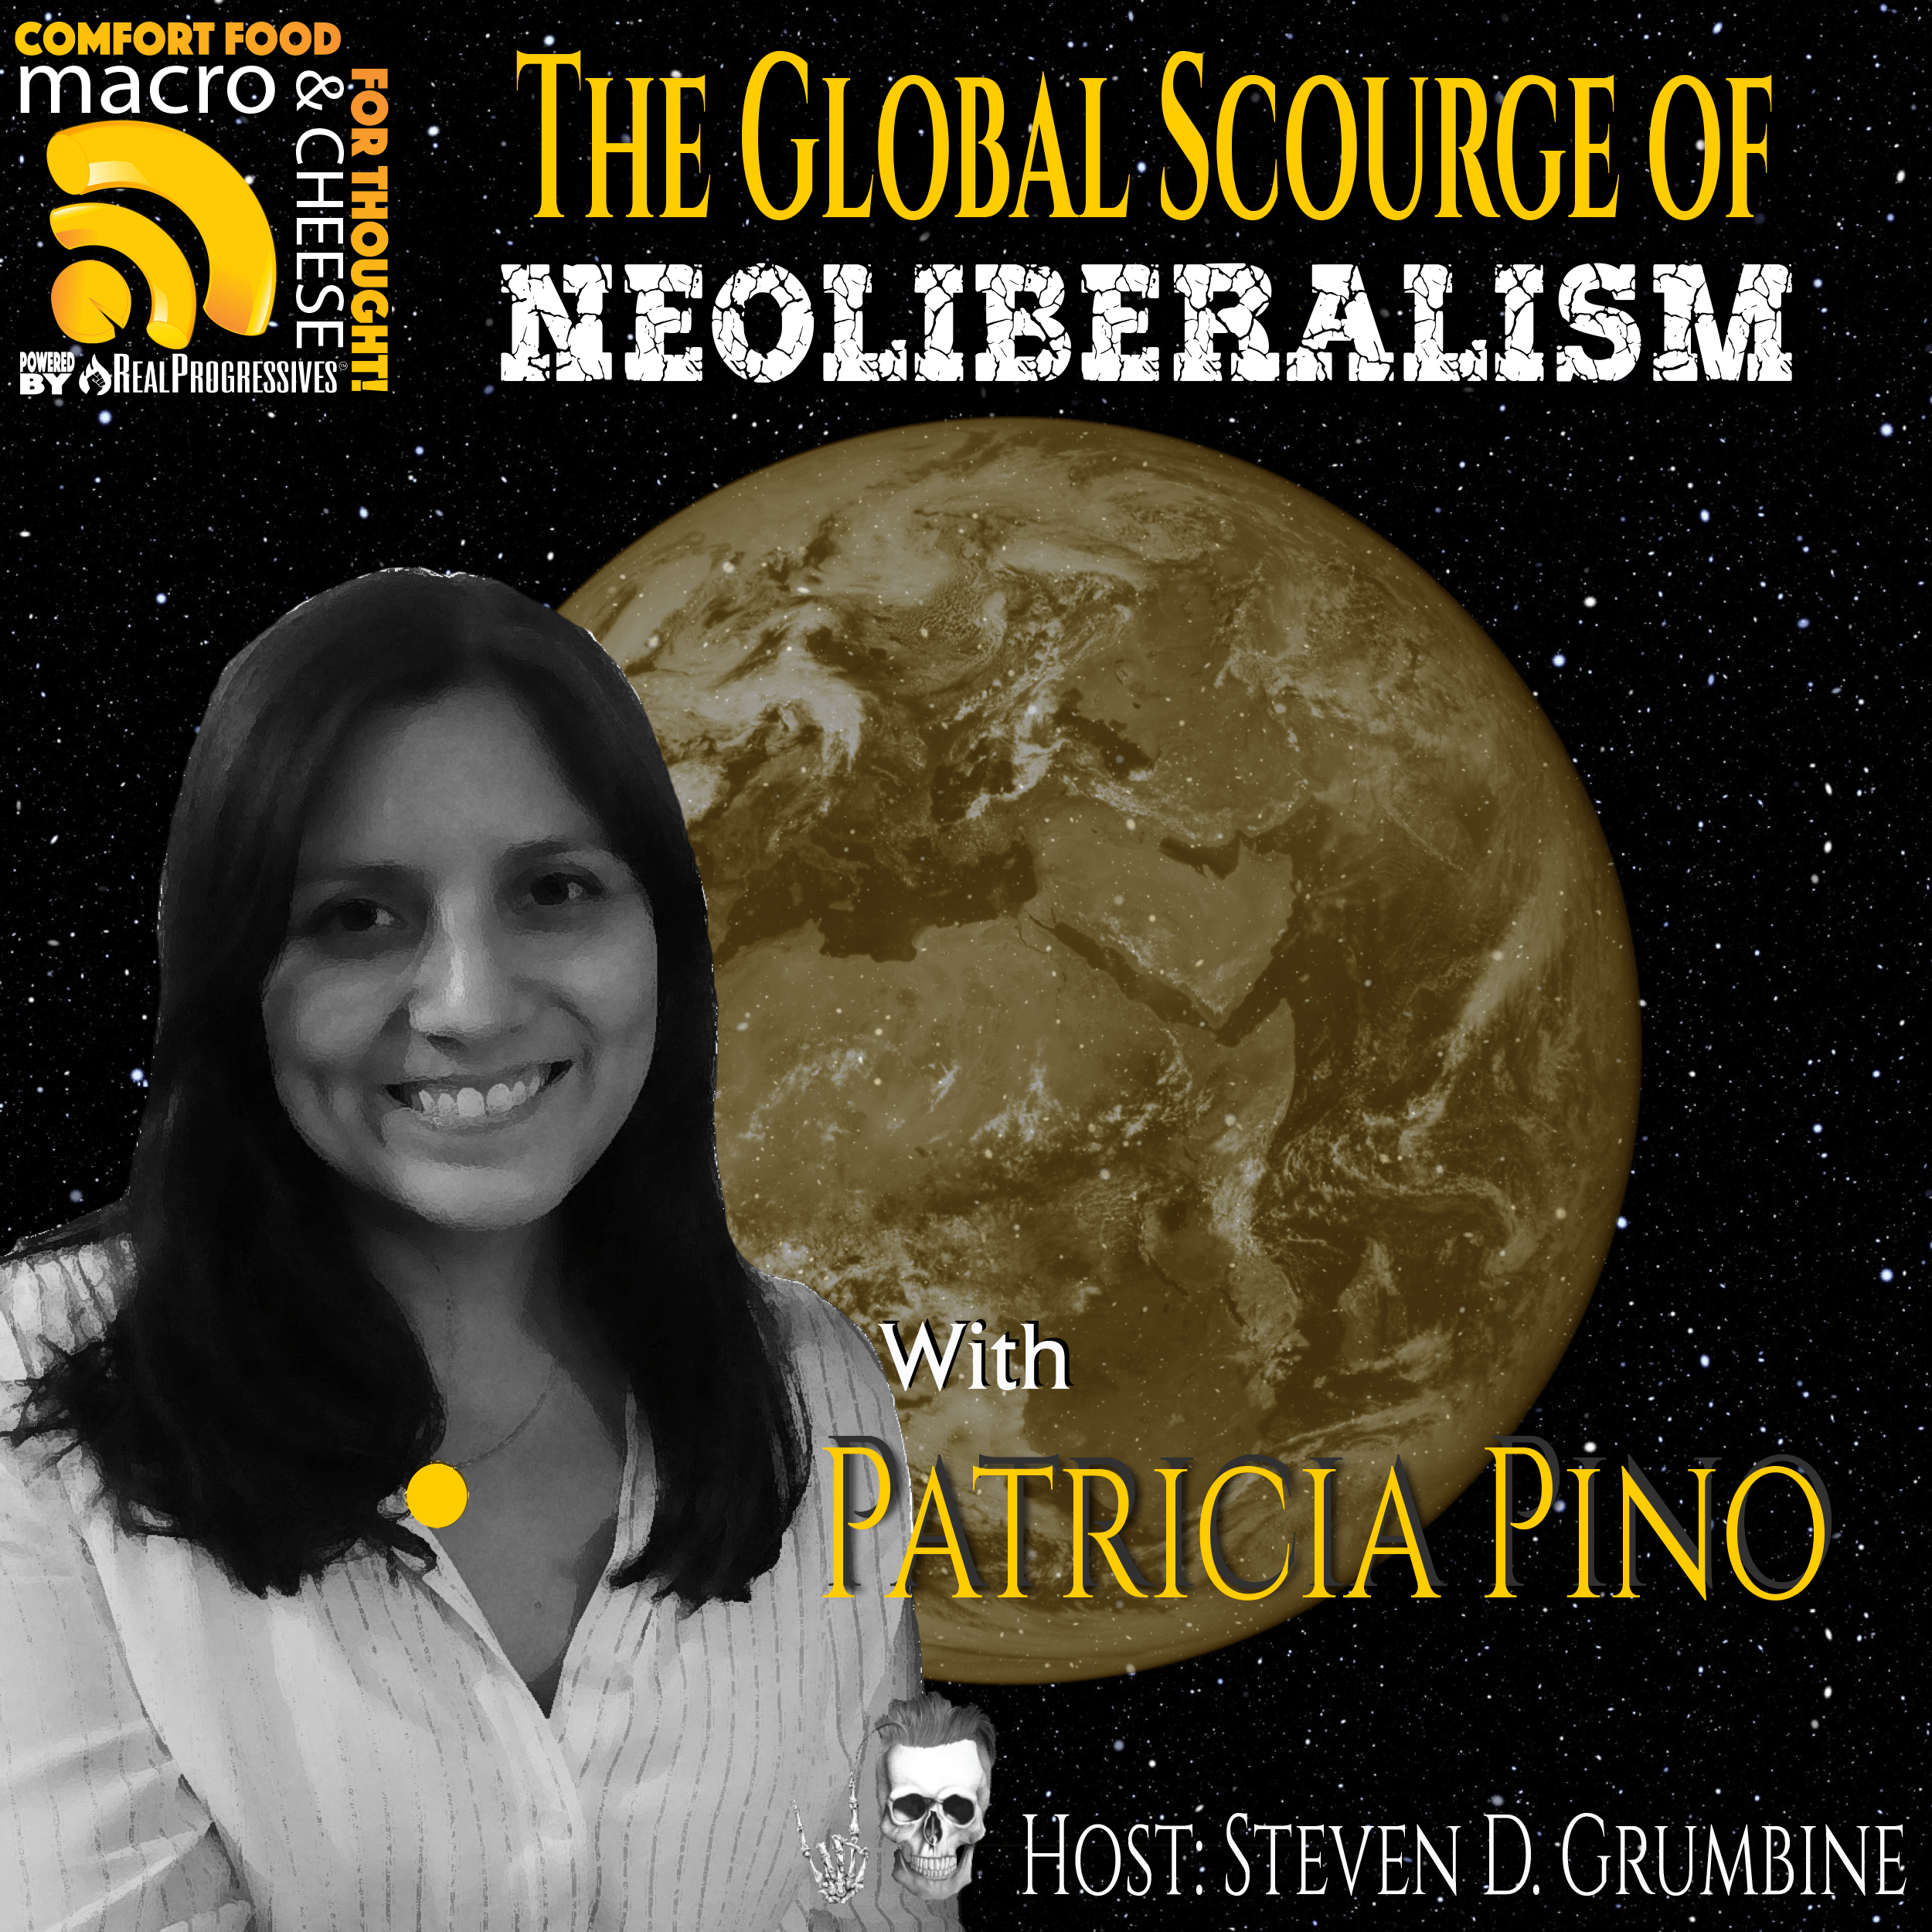 Episode 102 - The Global Scourge of Neoliberalism with Patricia Pino